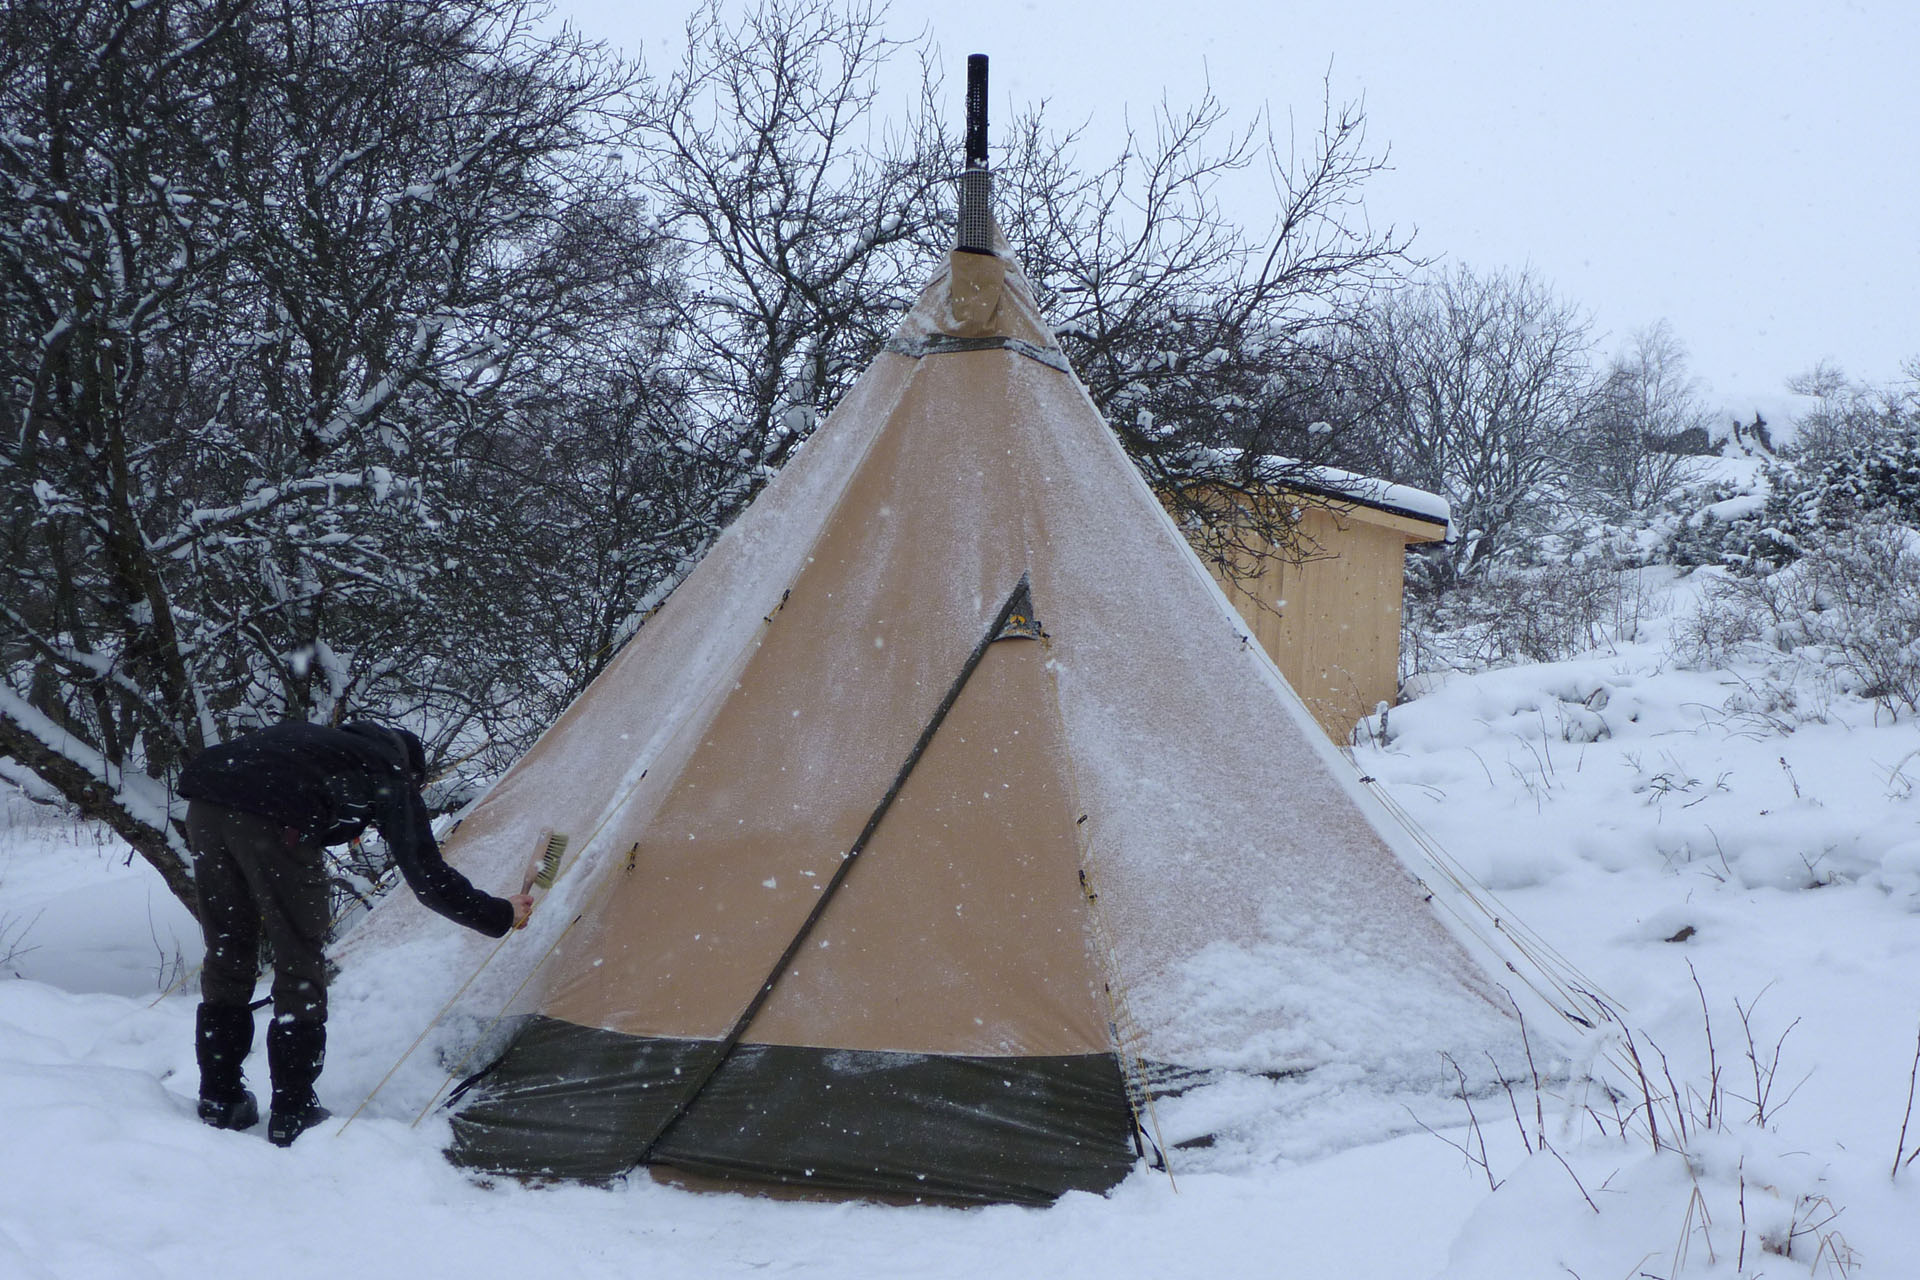 One Year in Our Tentipi Nordic Tipi